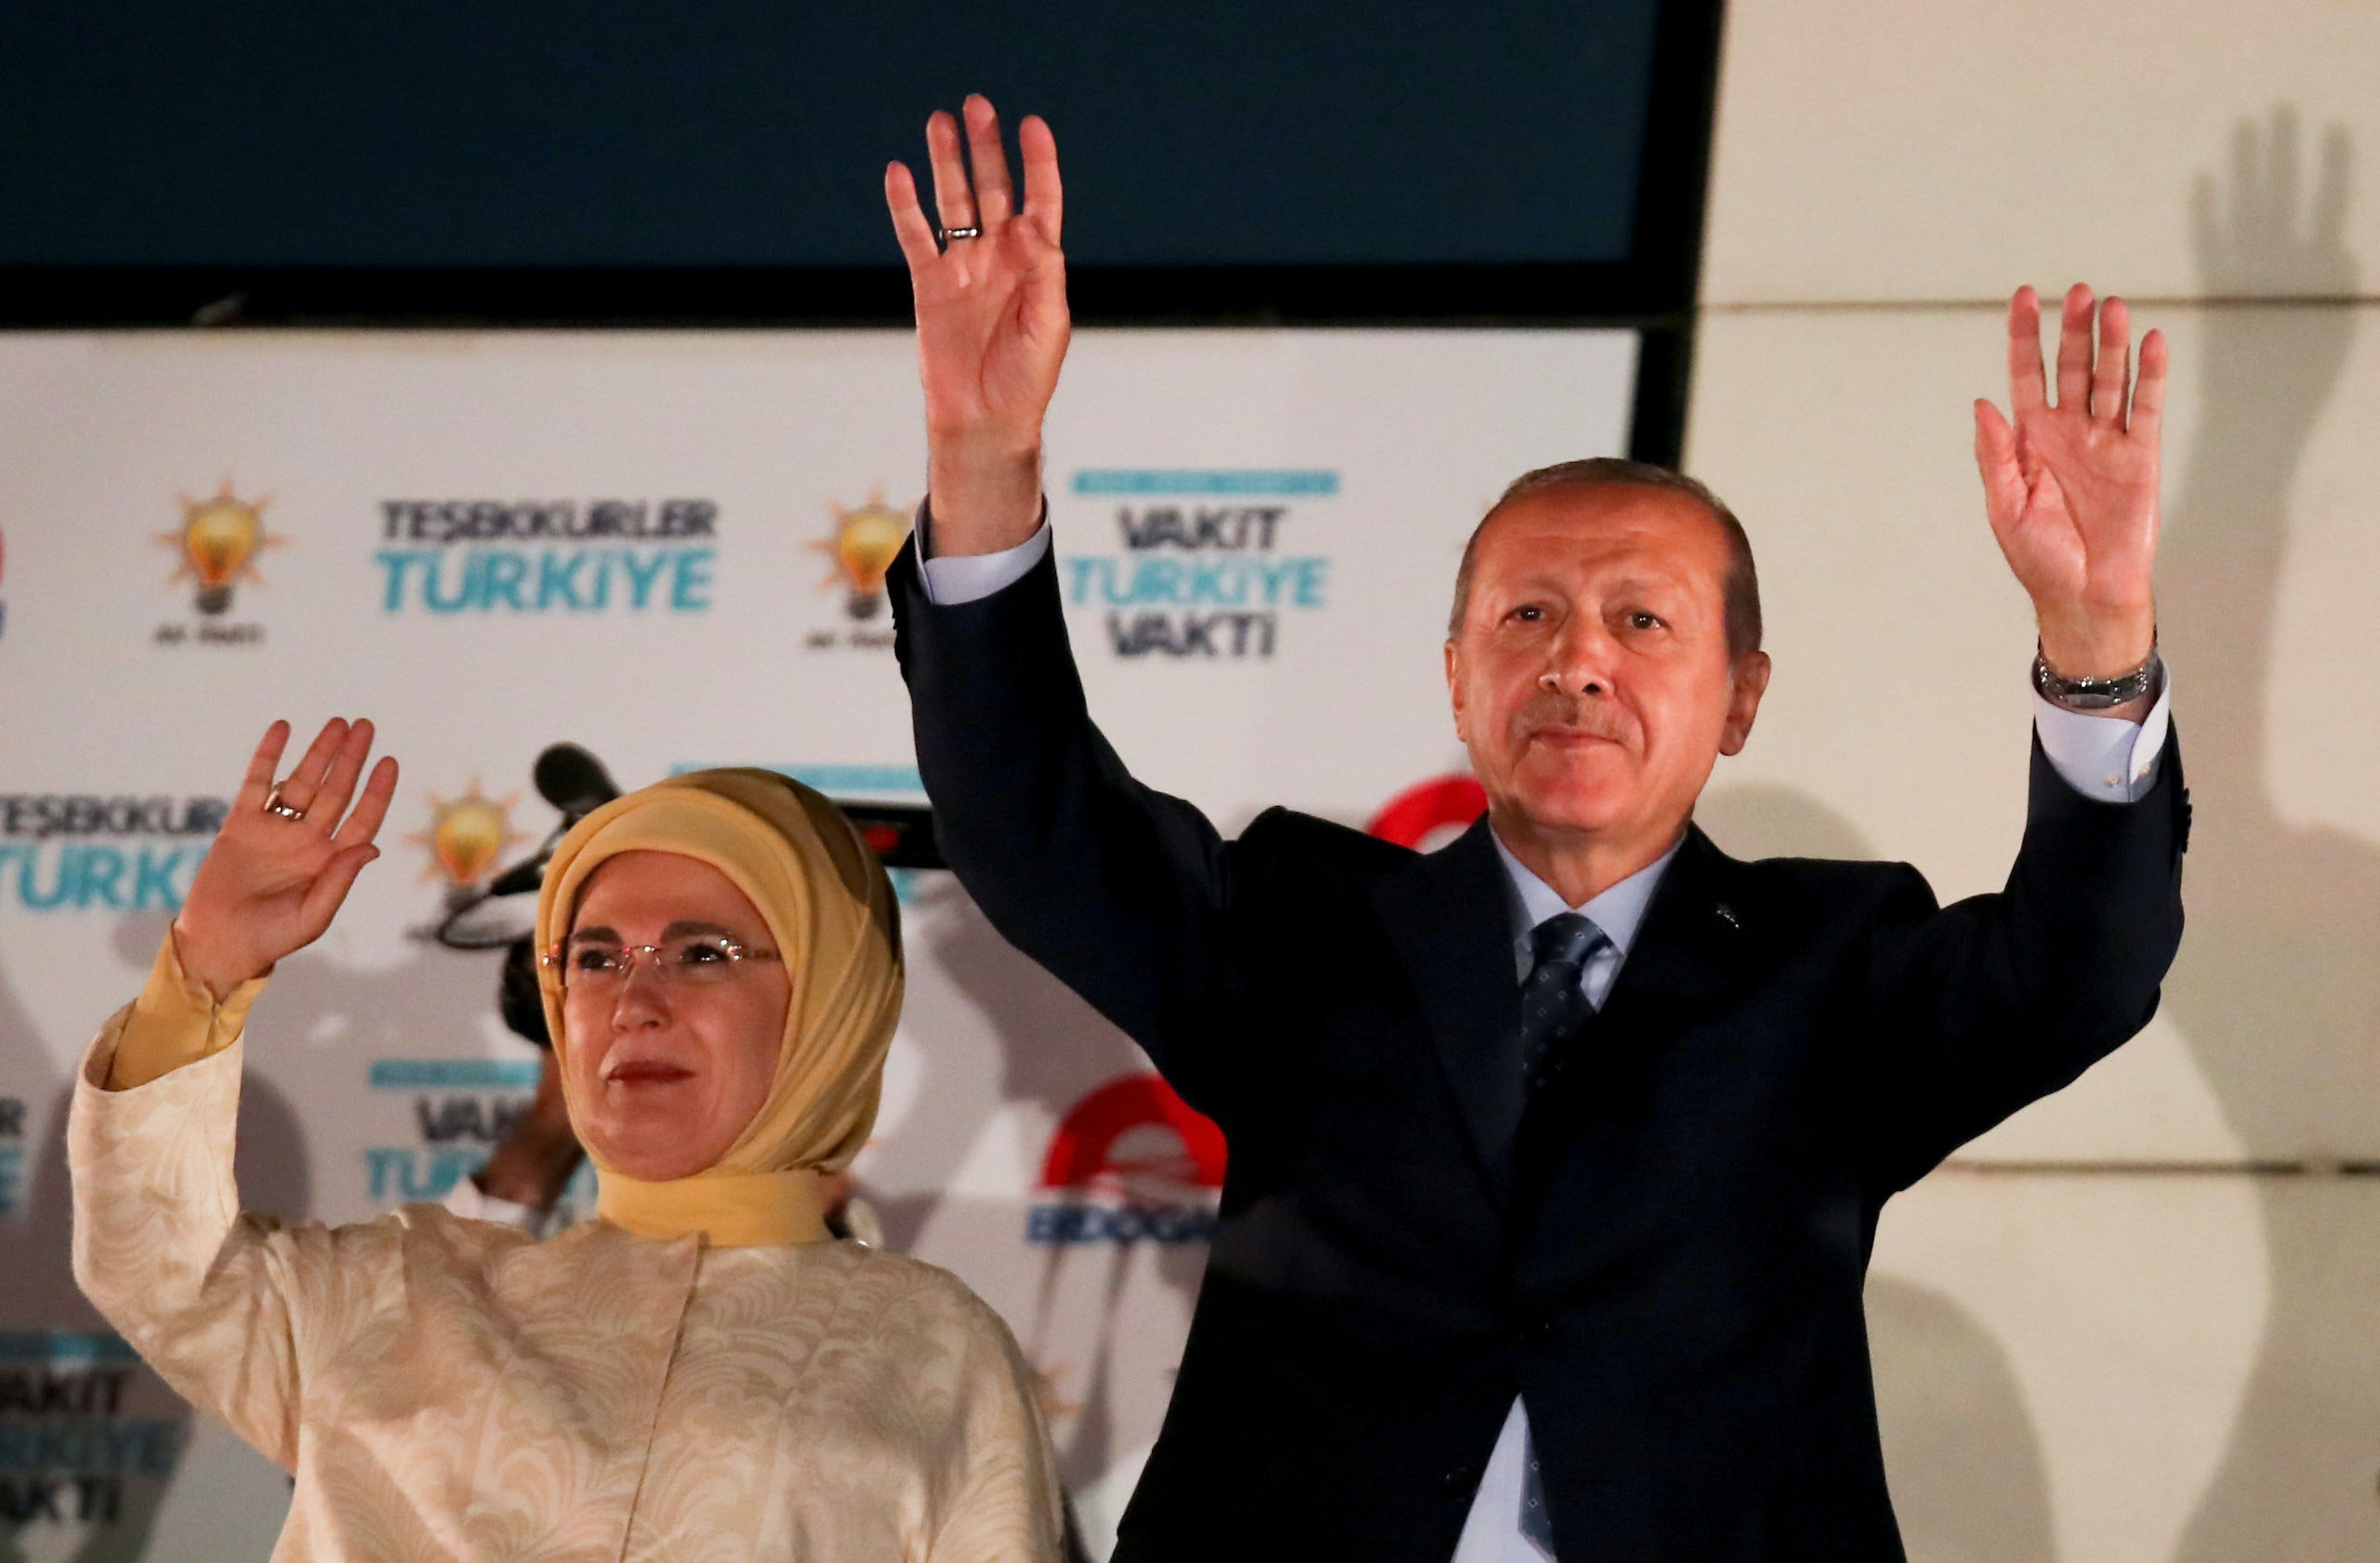 Turkish President Tayyip Erdogan and his wife Emine Erdogan greet supporters gathered in front of the AKP headquarters in Ankara, Turkey June 25, 2018. REUTERS/Umit Bektas     TPX IMAGES OF THE DAY